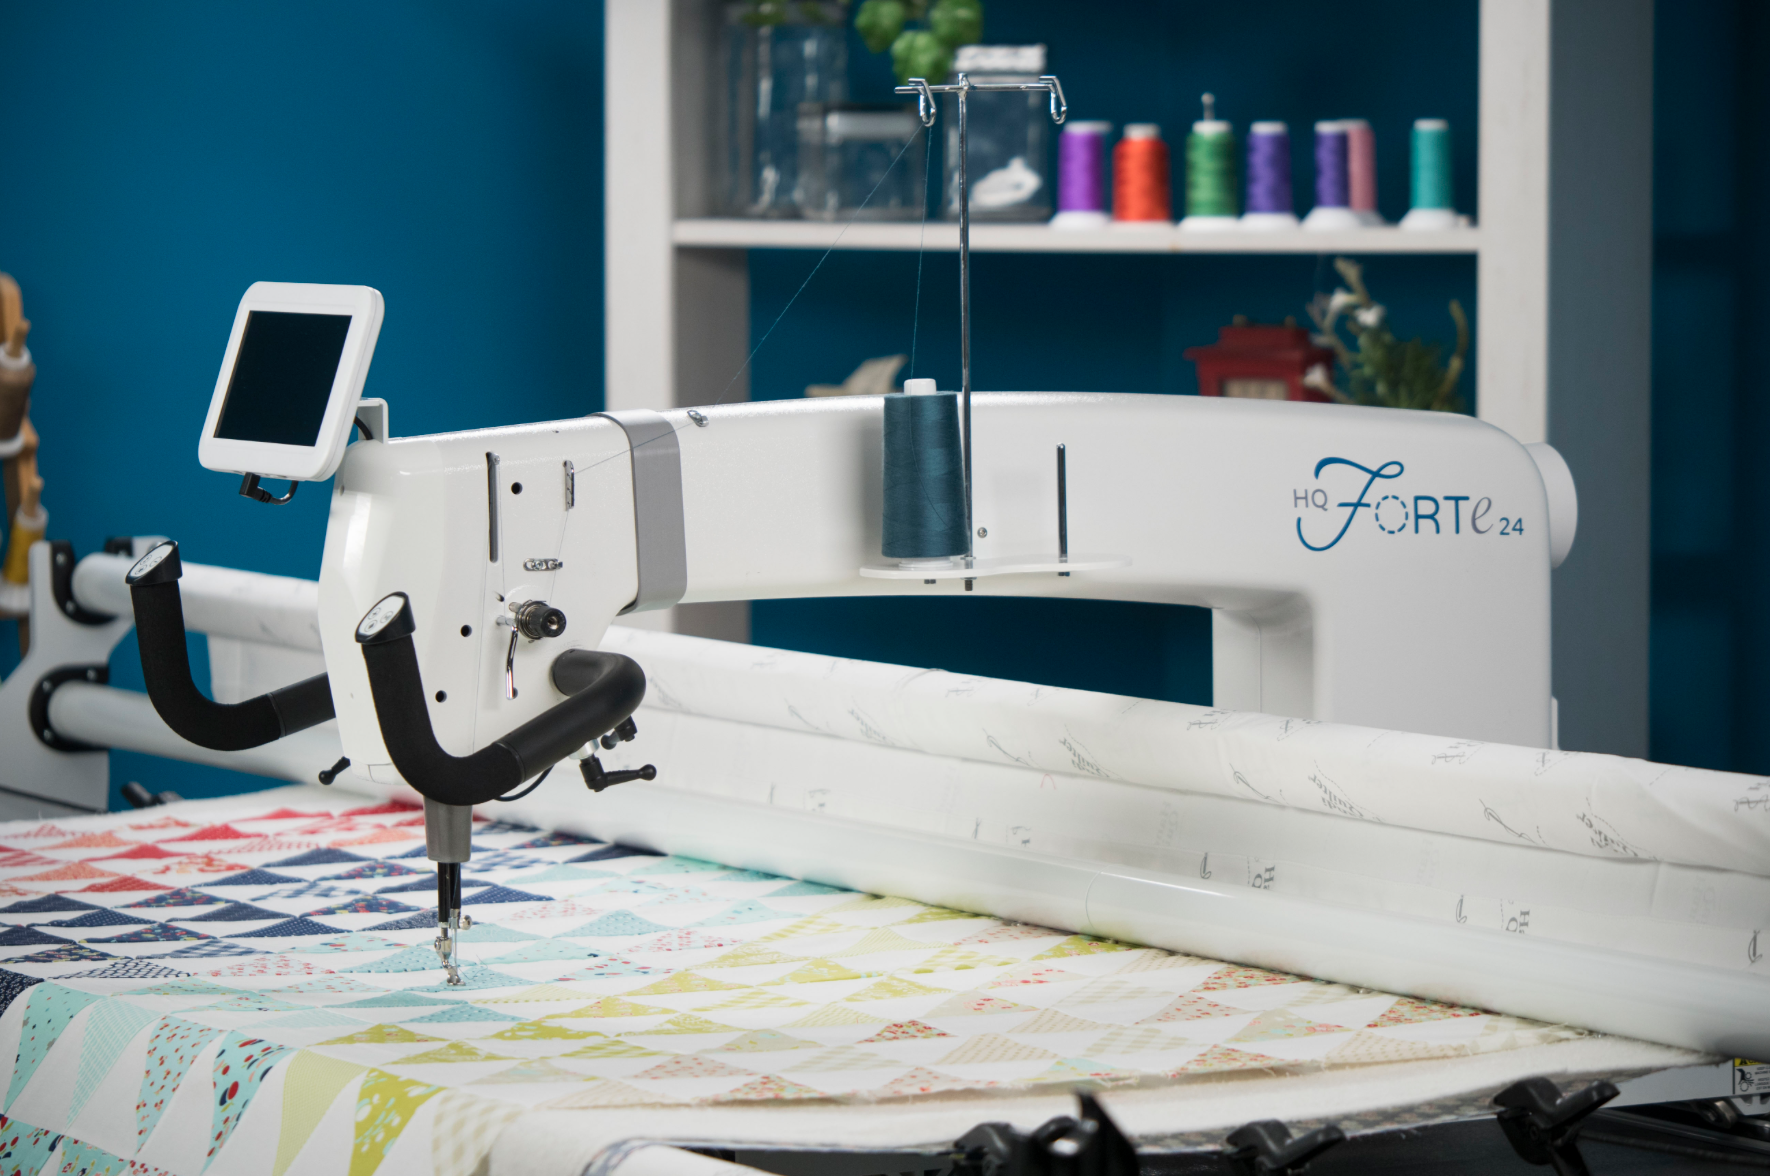 HQ Forte Quilt Machine